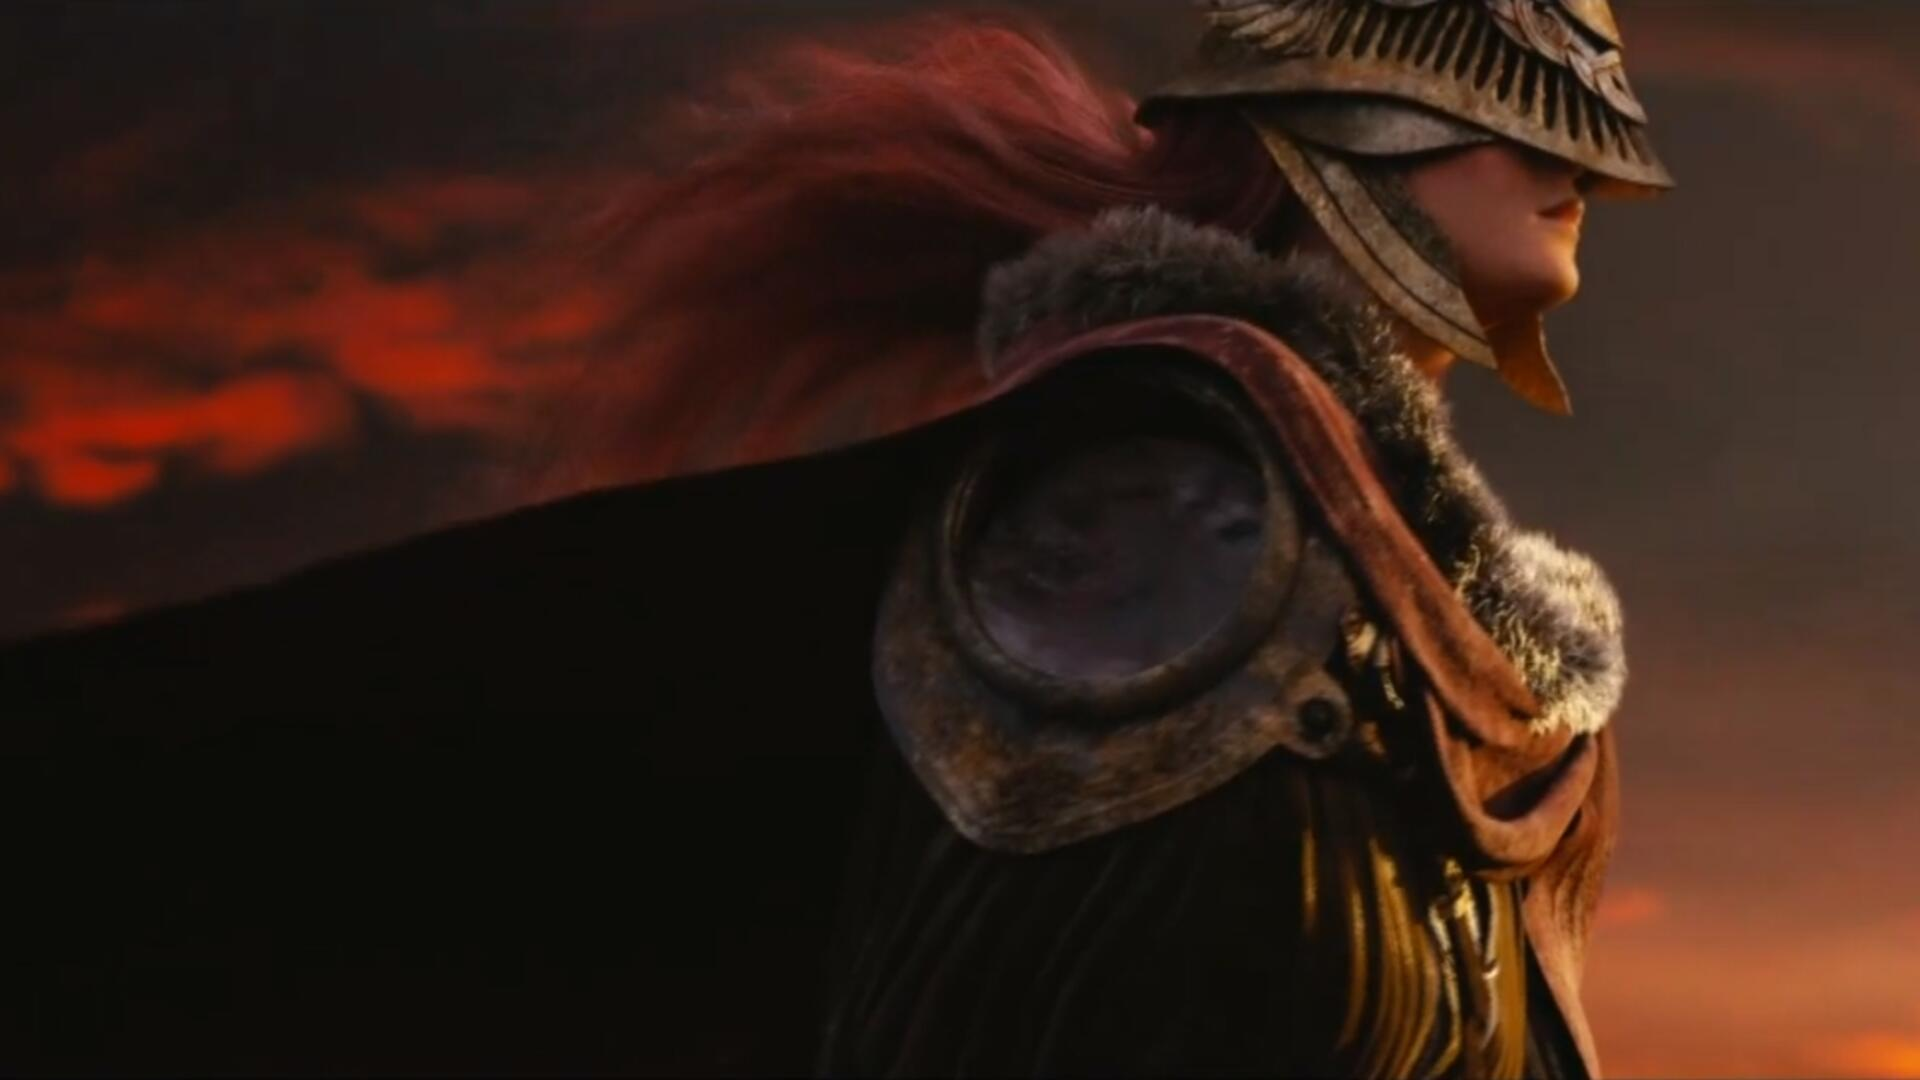 Elden Ring Will Have Horse Riding, Among Other New Details Shared by Souls Creator Hidetaka Miyazaki